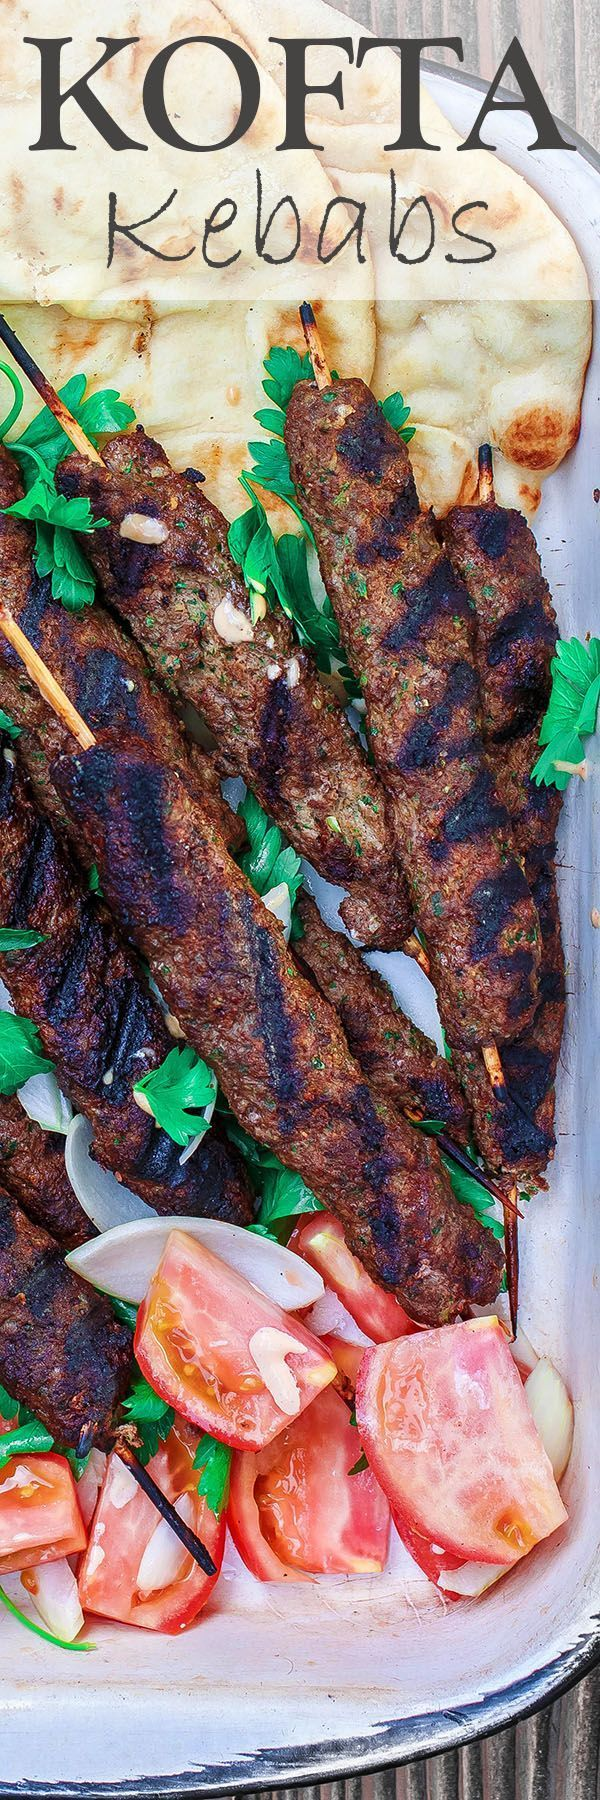 Kofta Kebab Recipe | The Mediterranean Dish. Authentic kofta kebabs with ground beef and lamb, garlic, onions, fresh parsley and warm Middle Eastern spices. See the step-by-step tutorial on The Mediterranean Dish.